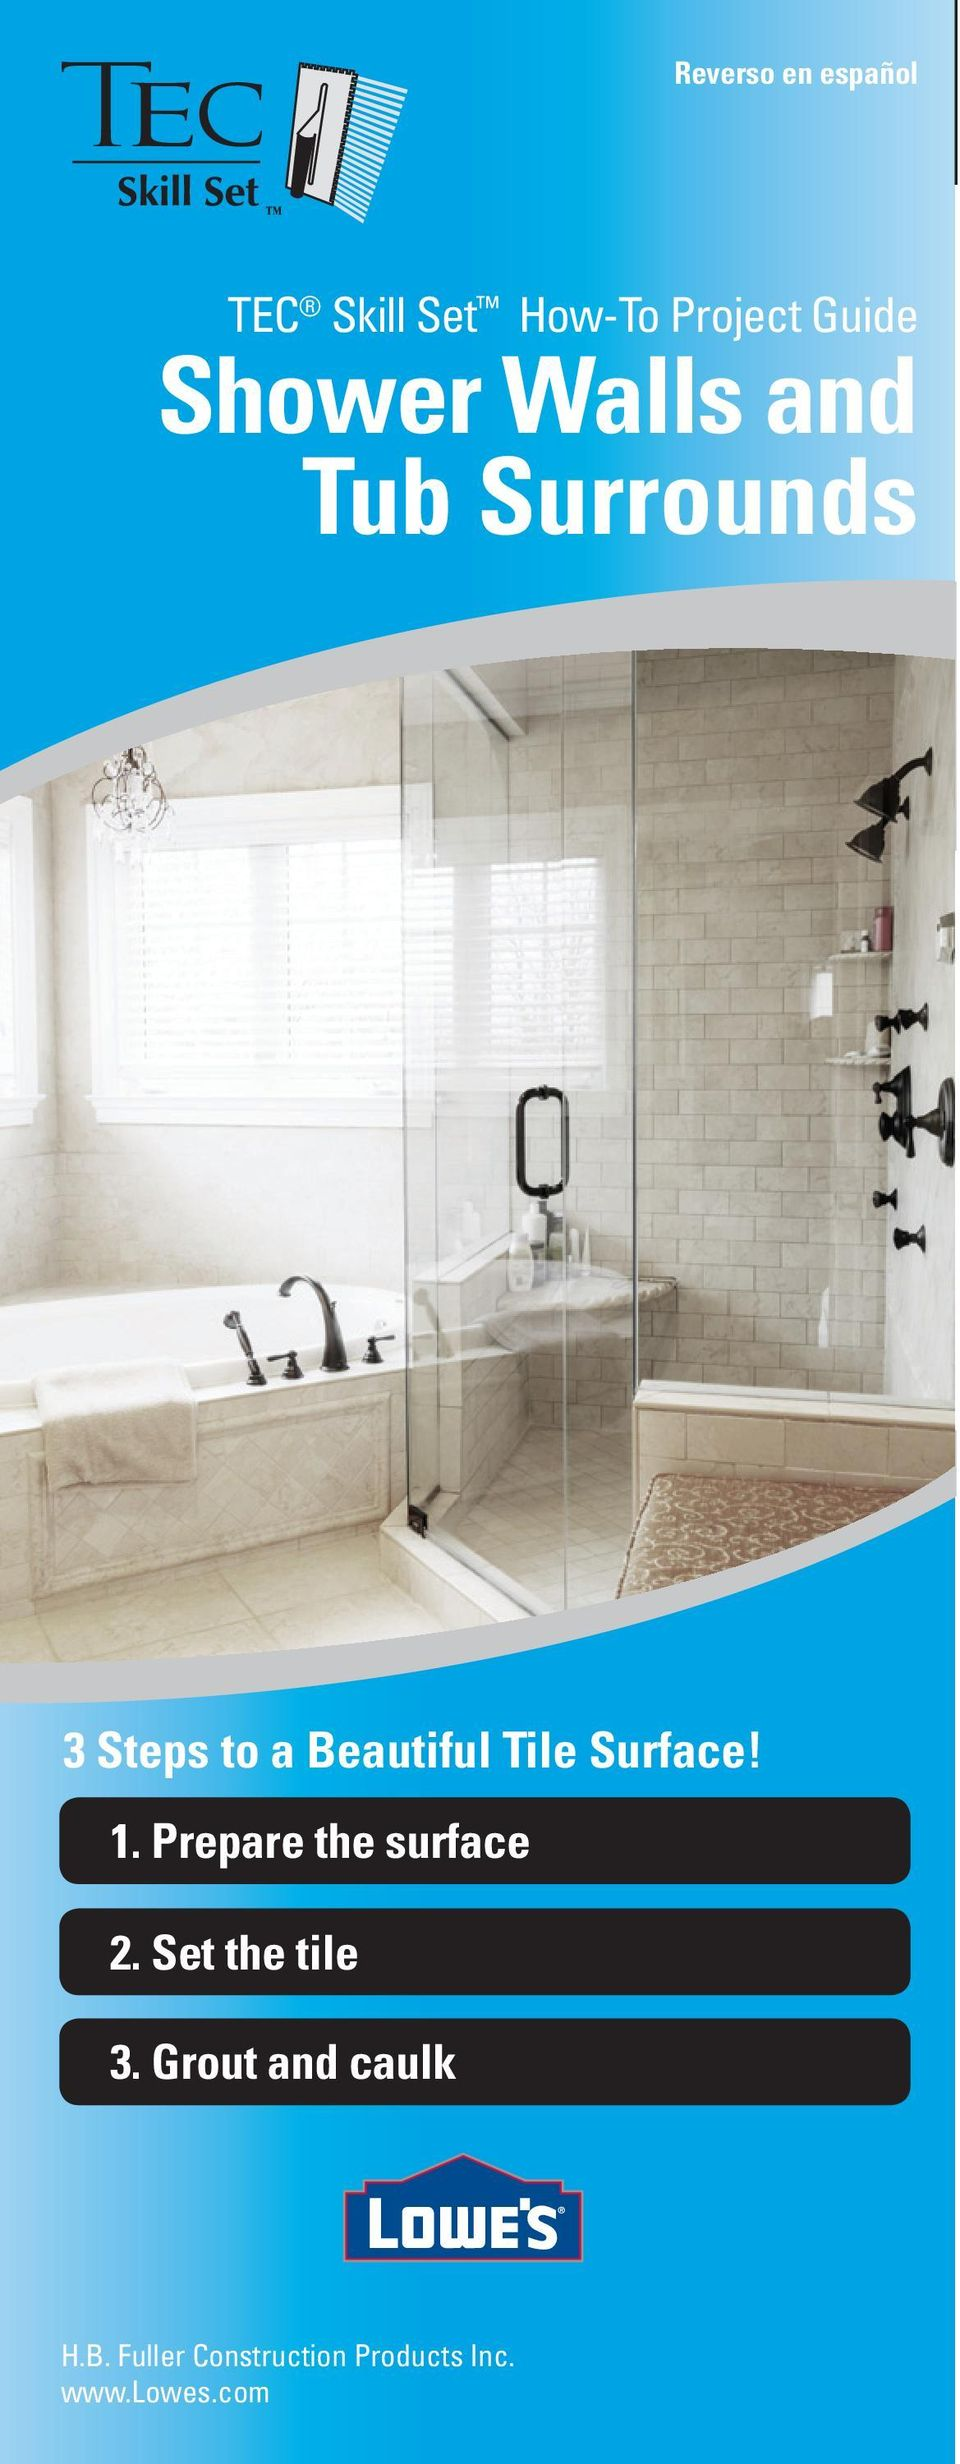 Shower Walls and Tub Surrounds - PDF